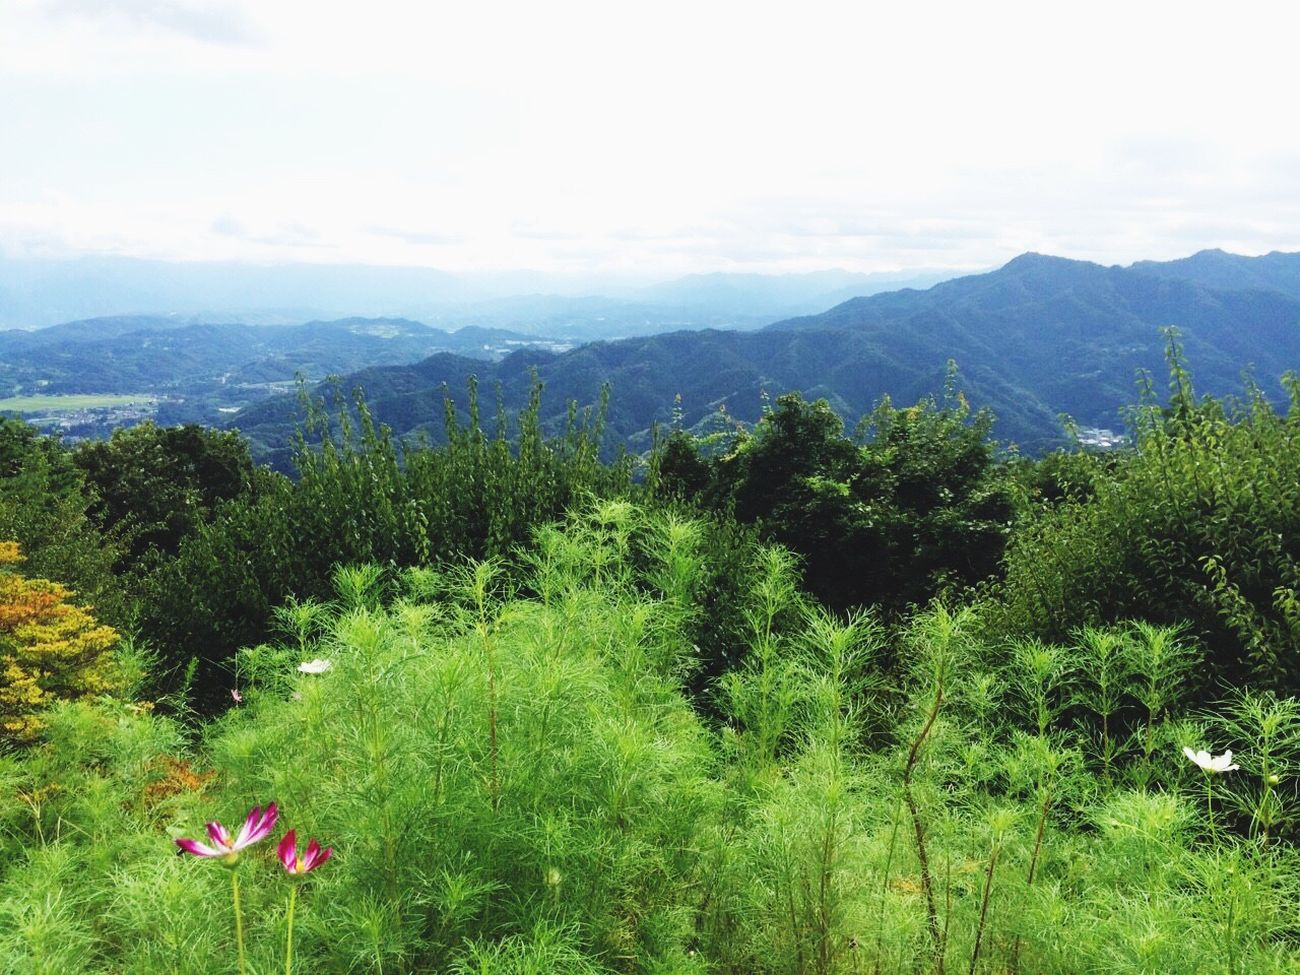 Woods Taking Photos Walking 絶景 Mountain Enjoying Life Superb View Nature The Top  Enjoy Chichibu Landscape Forest Hiking 癒し Healing